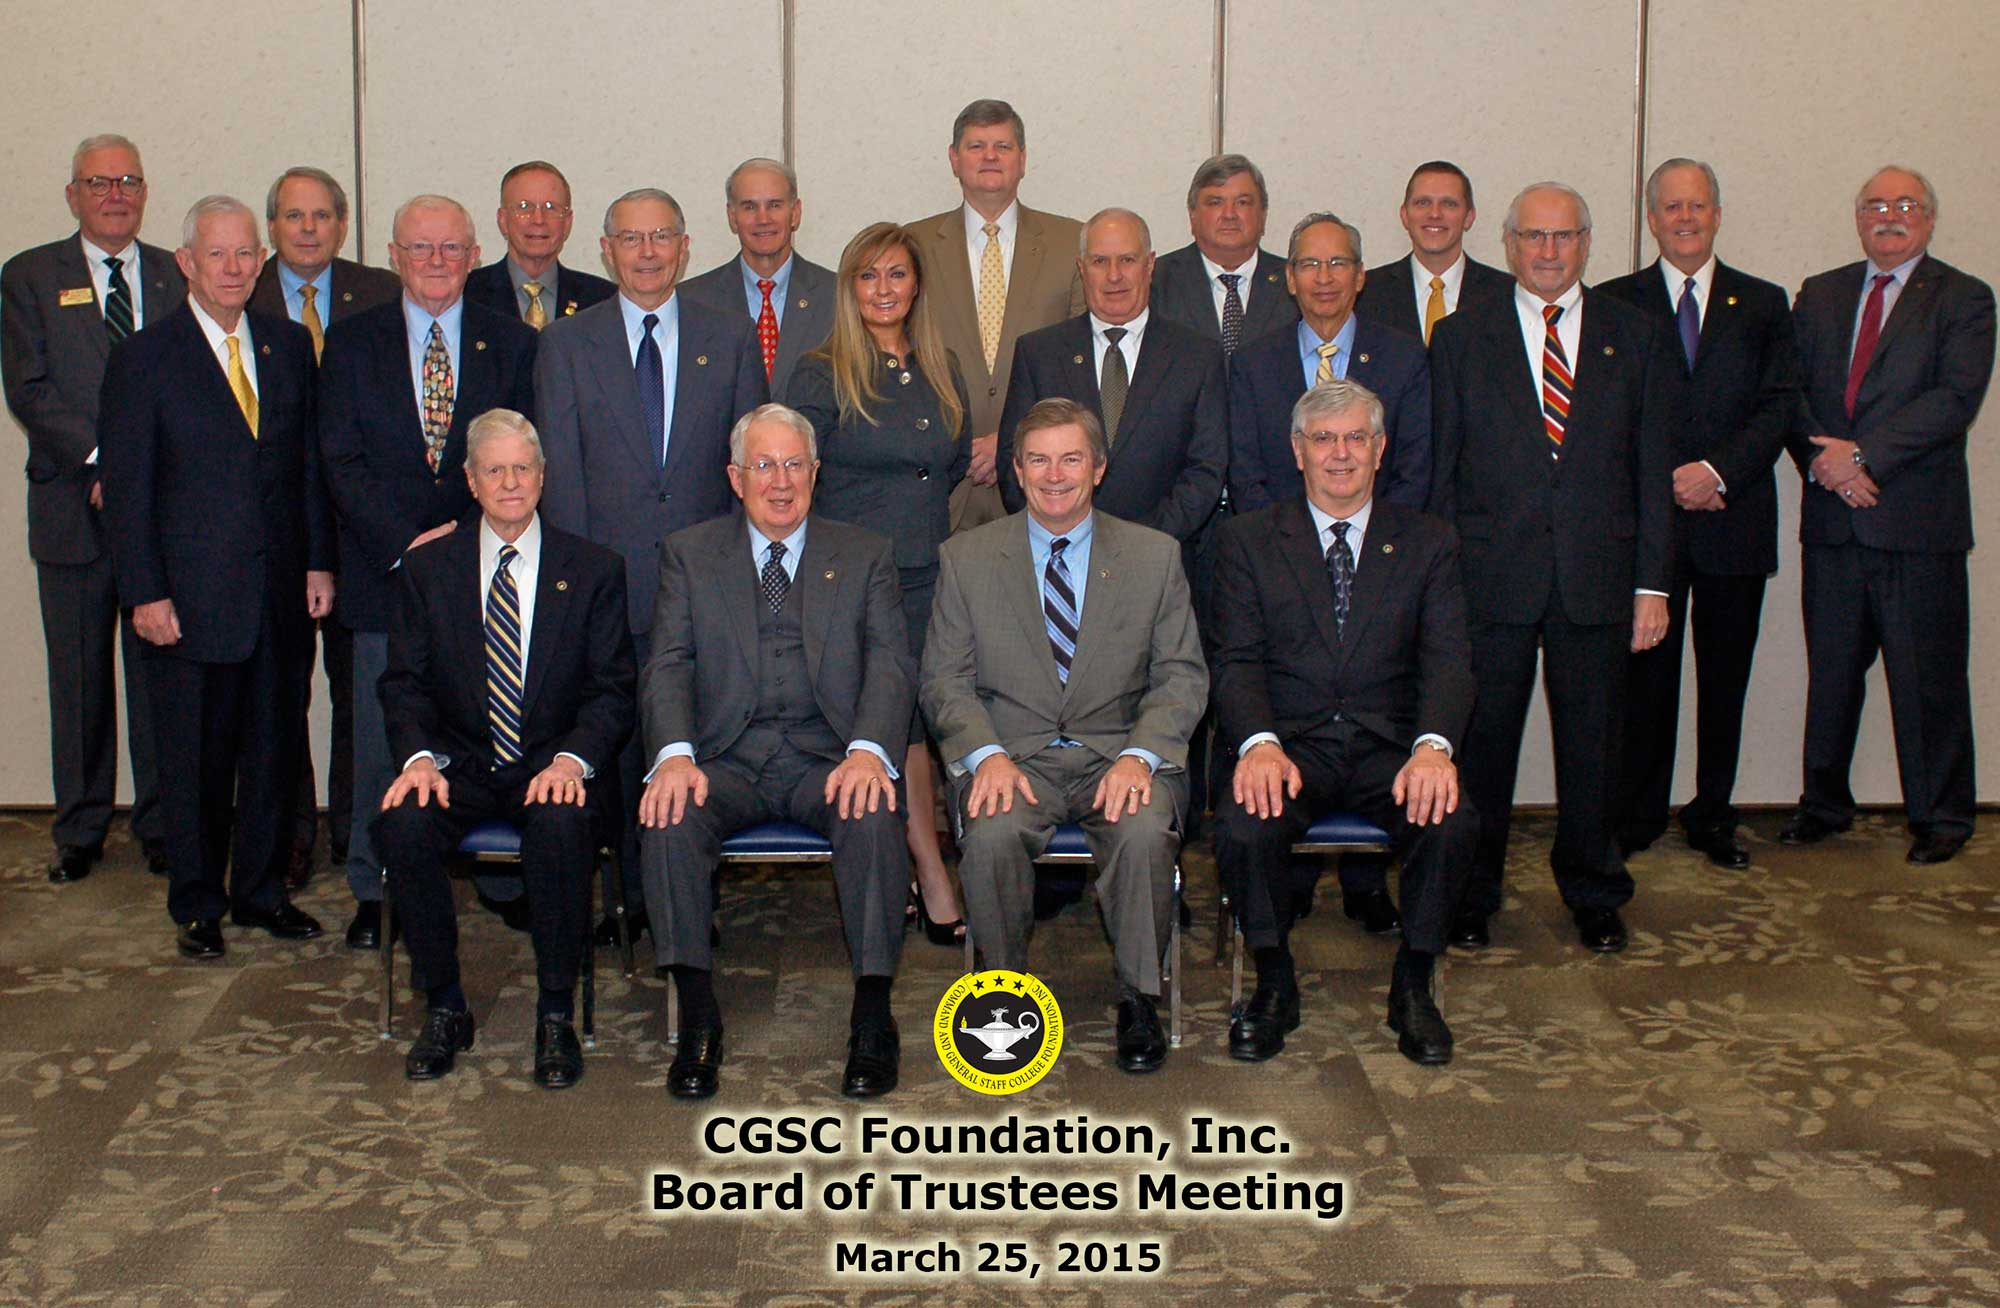 Annual board meeting sets tone for remainder of 2015